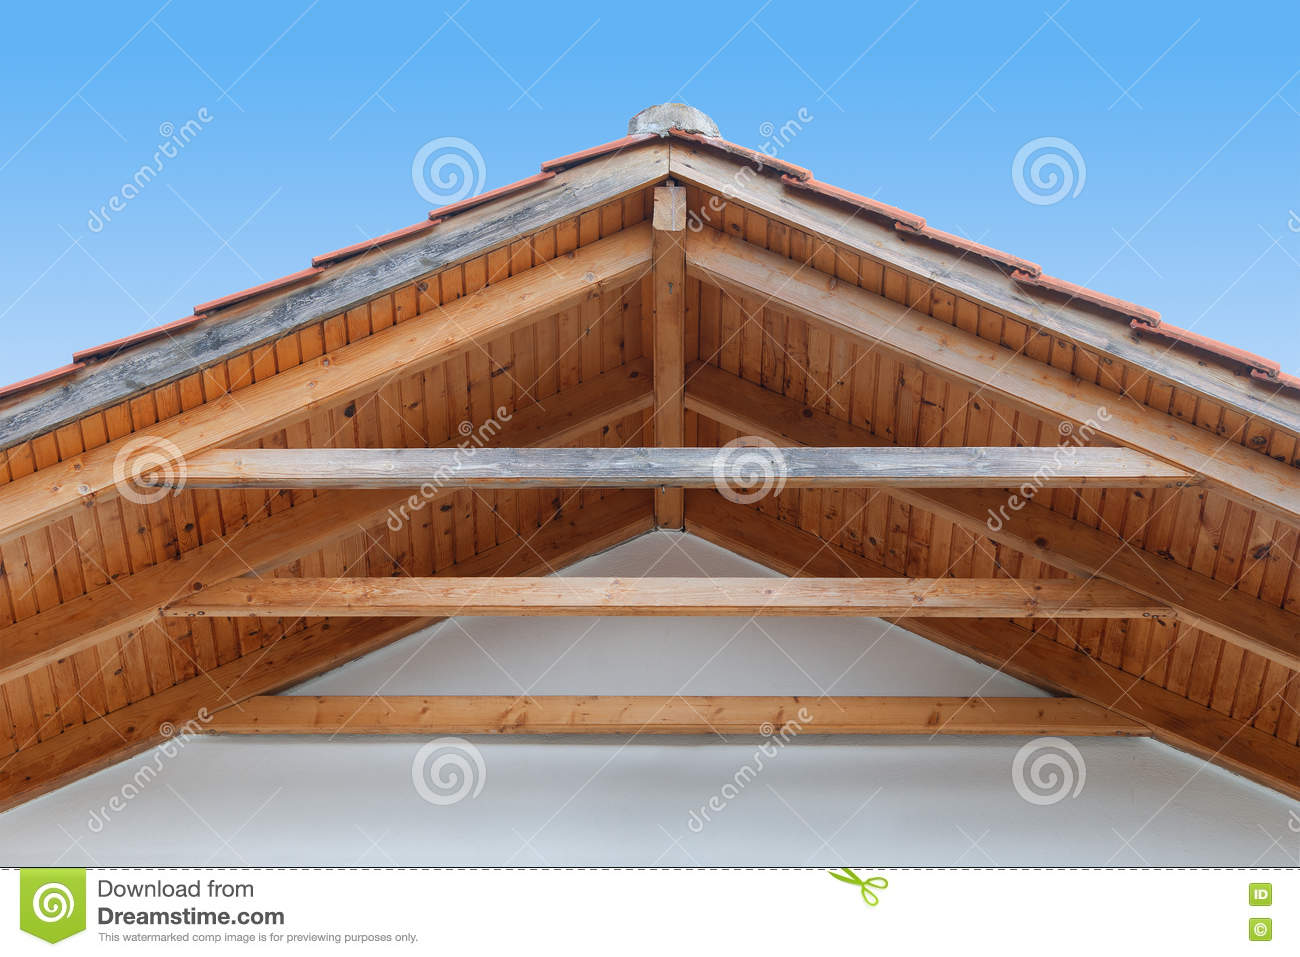 how to cut rafters for a gable roof